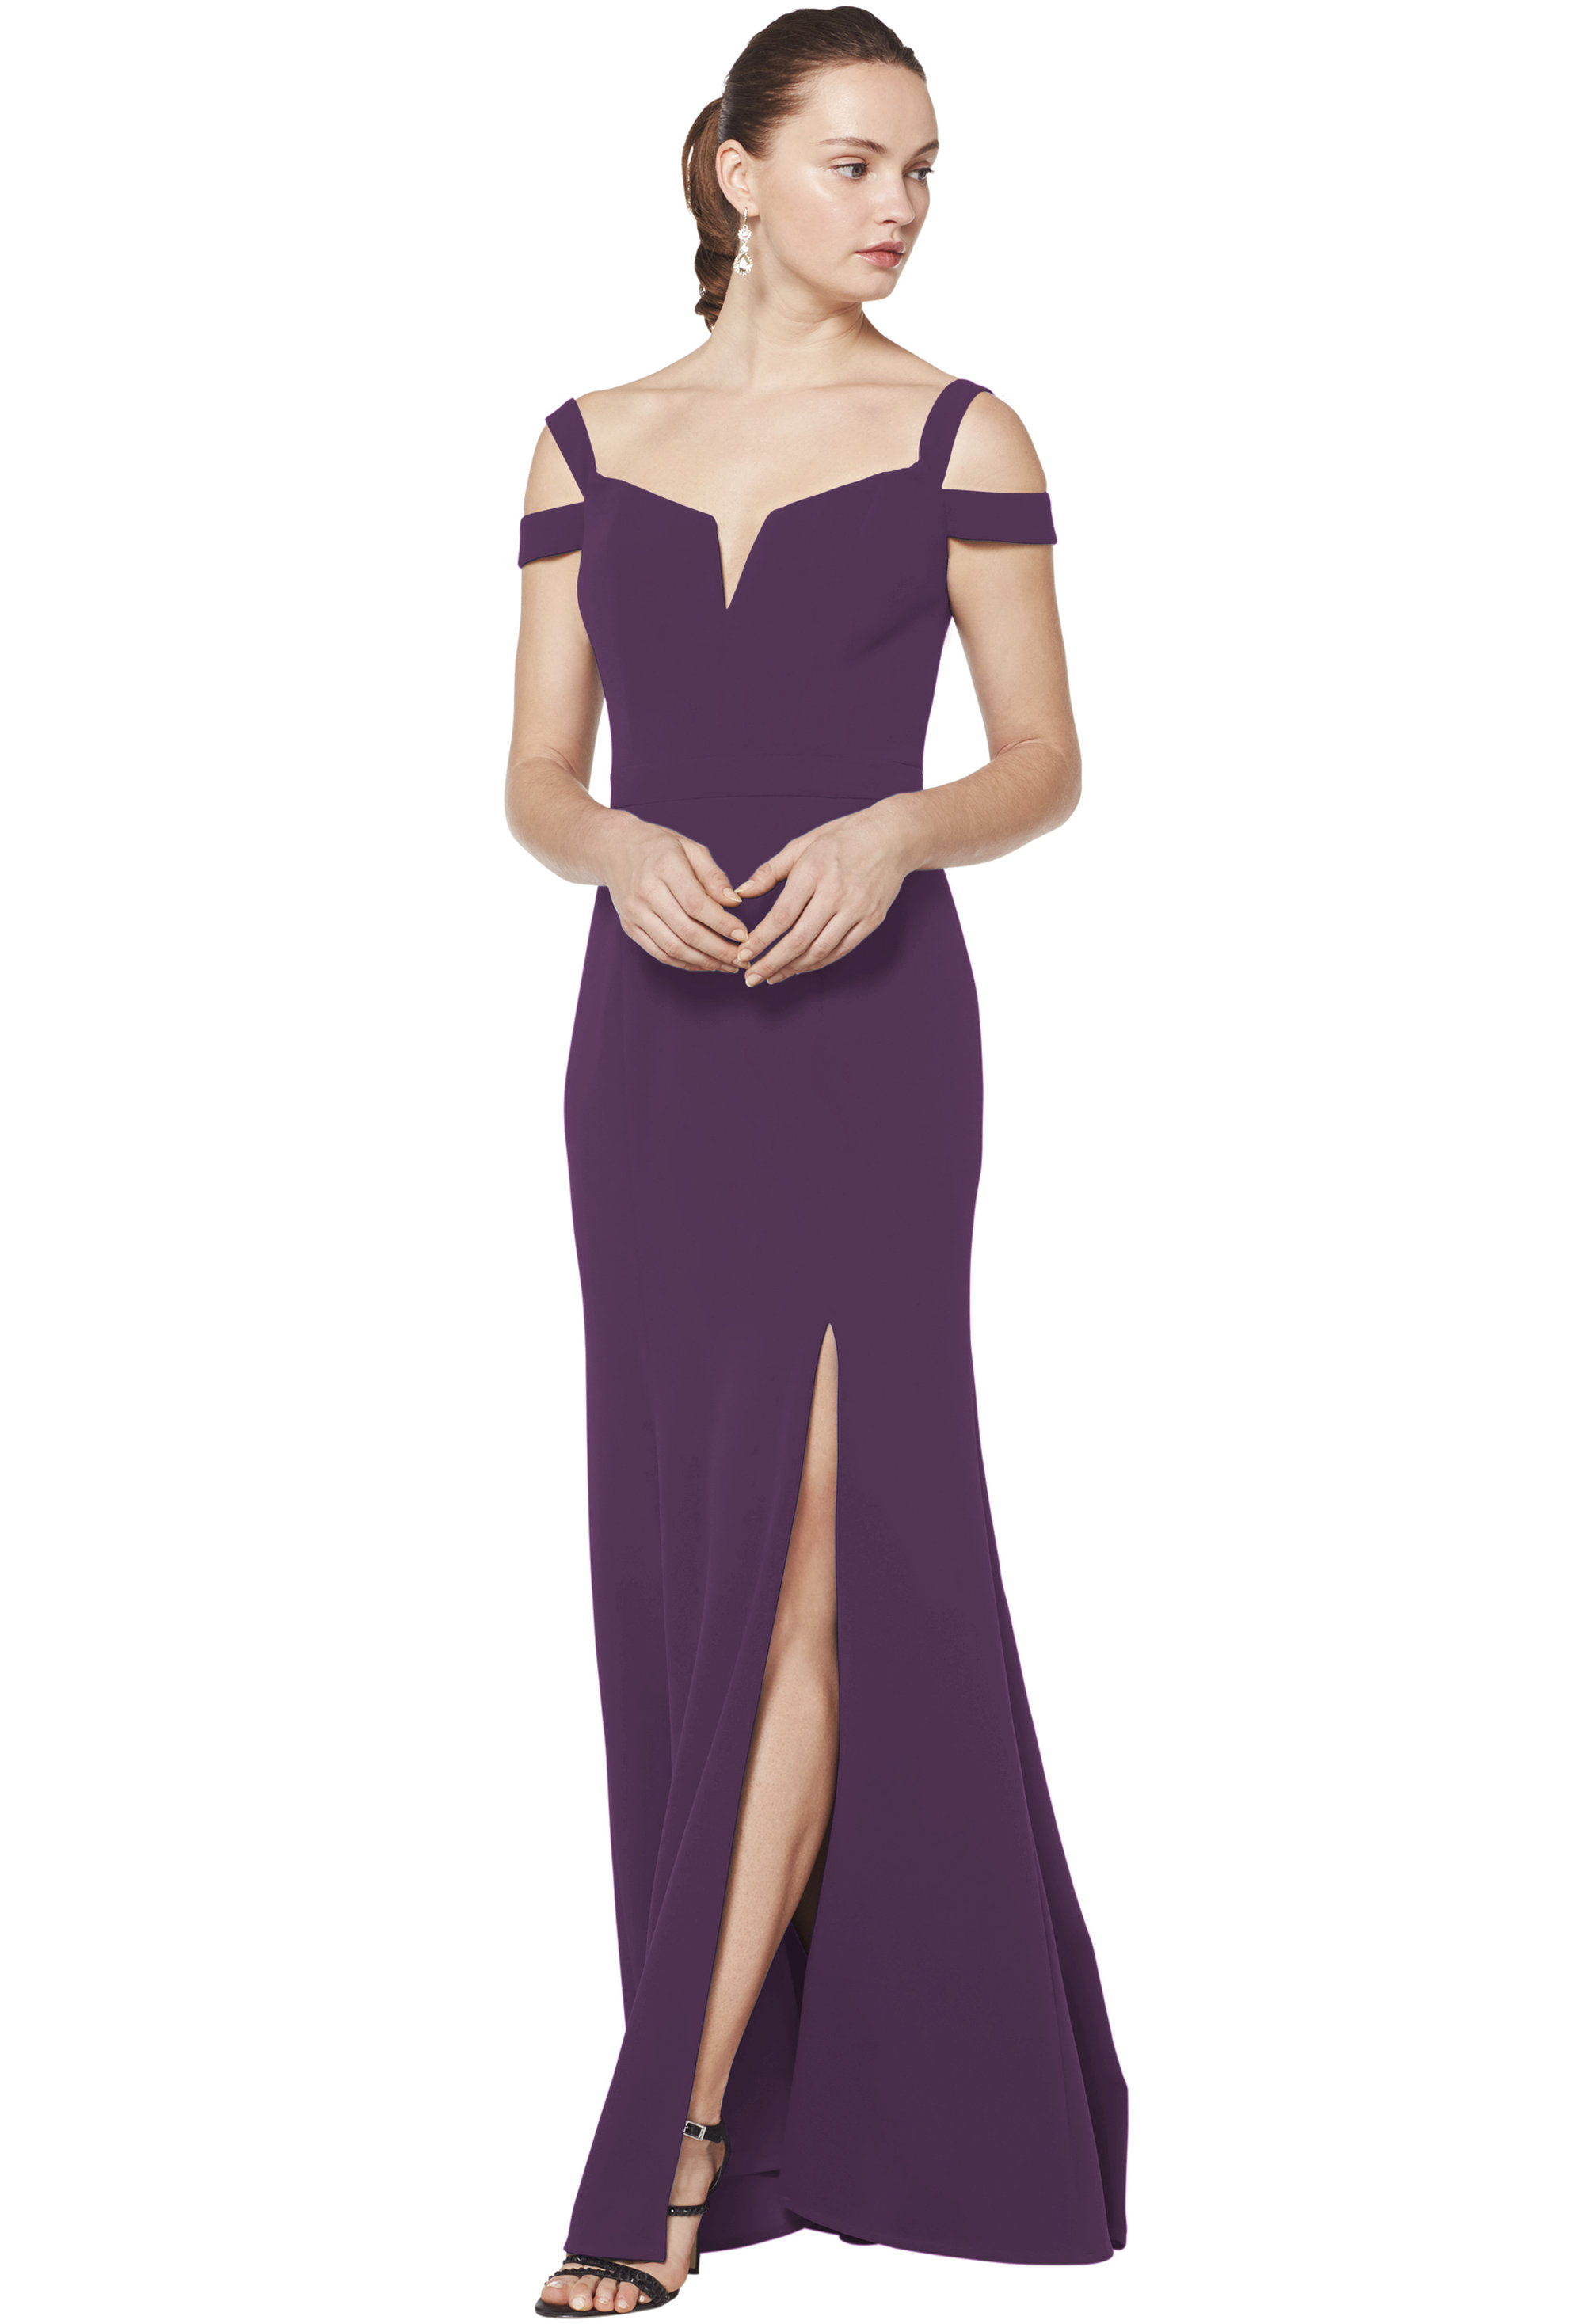 Bill Levkoff PURPLE Stretch Crepe Off The Shoulder A-line gown, $230.00 Front